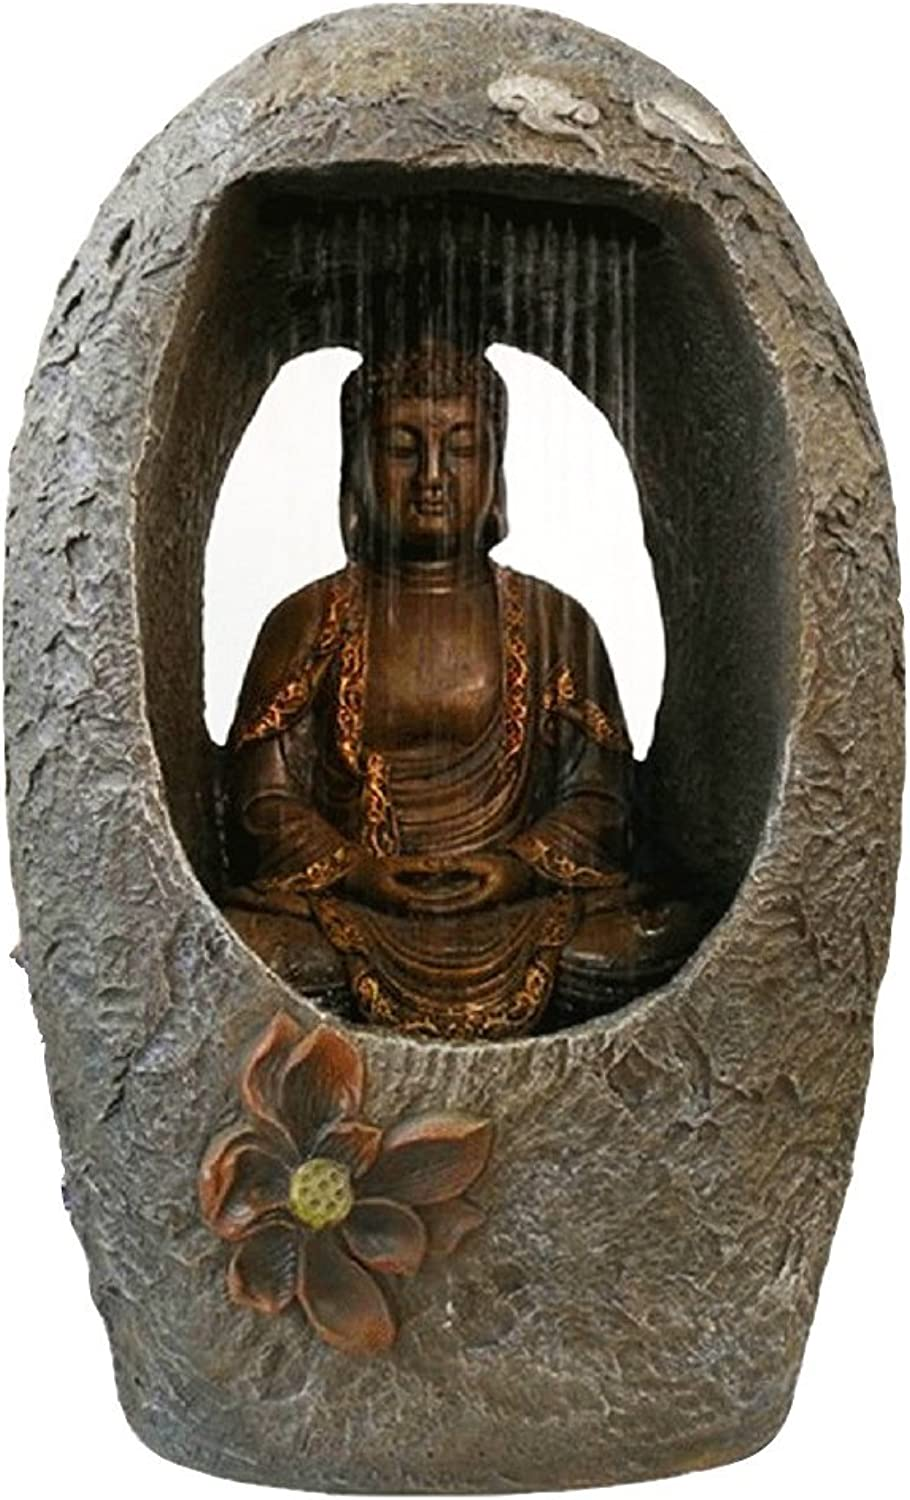 Yinasen Huge Size Buddhism Fengshui Lucky Water Running Fountain Figurines (Style 2) L 15.7 W 9.8 H 23.6in